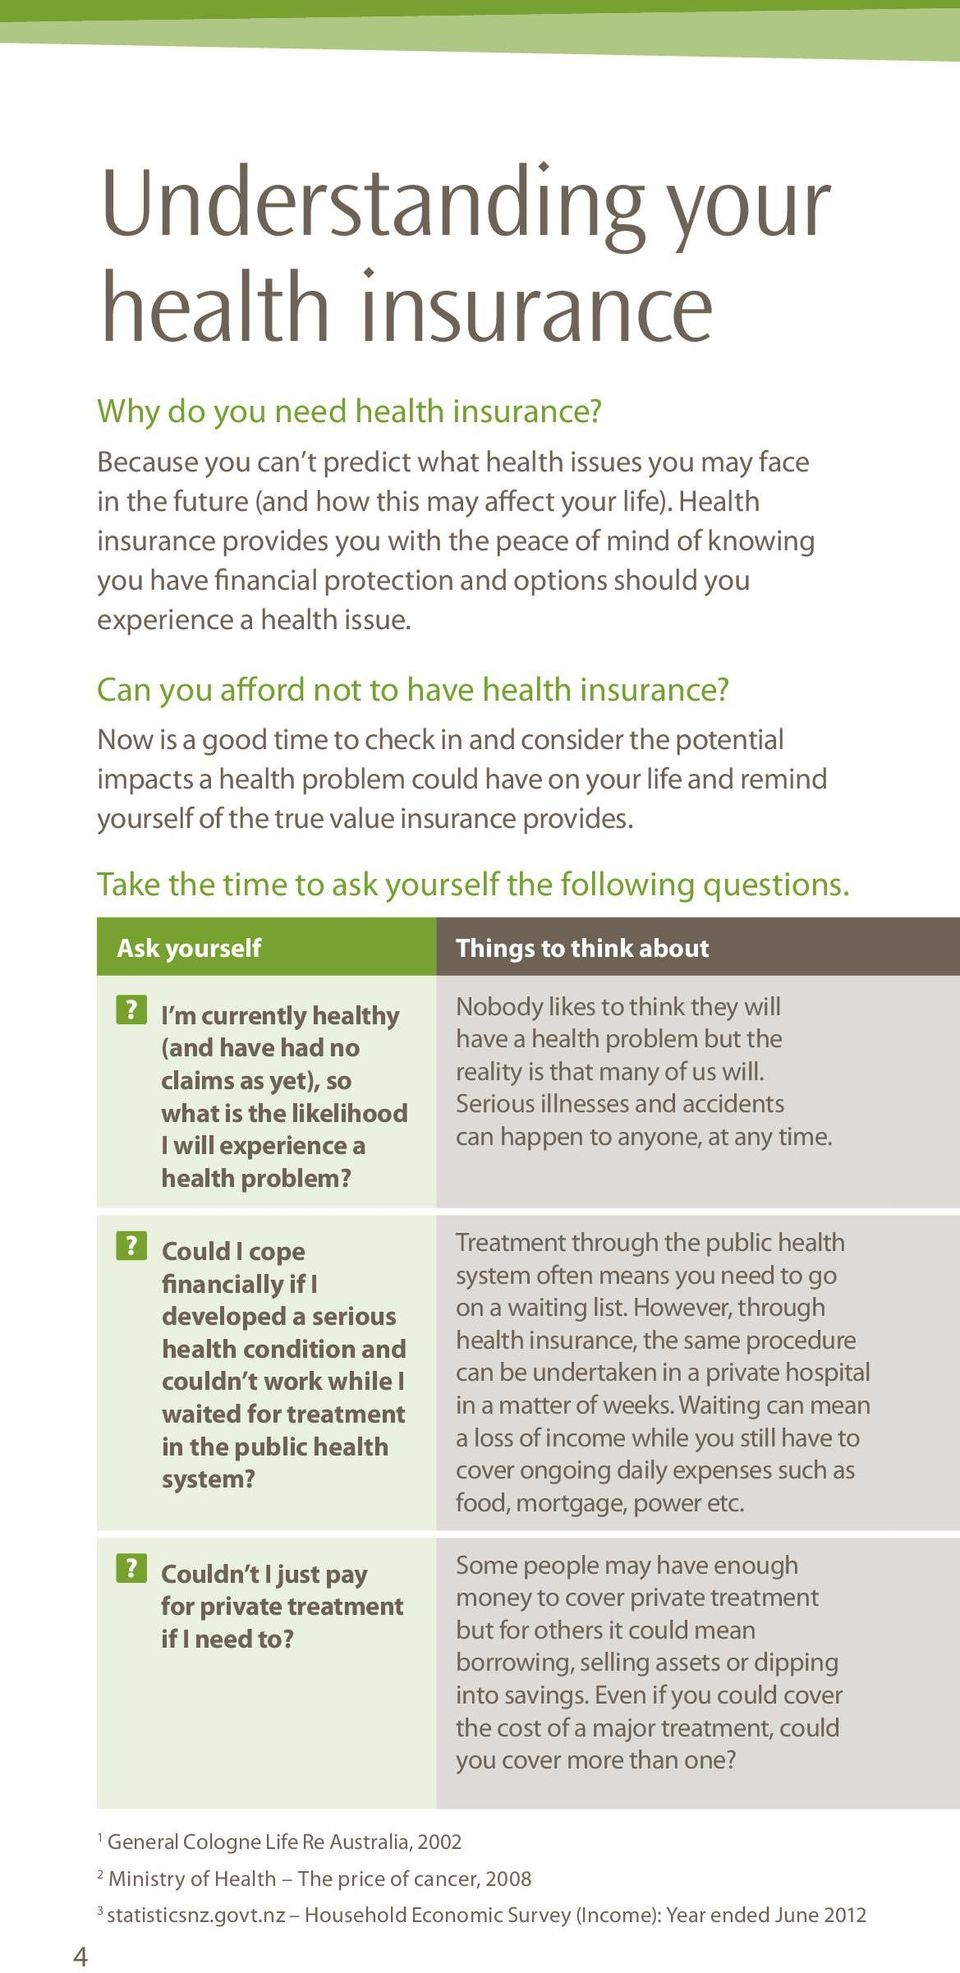 Now is a good time to check in and consider the potential impacts a health problem could have on your life and remind yourself of the true value insurance provides.